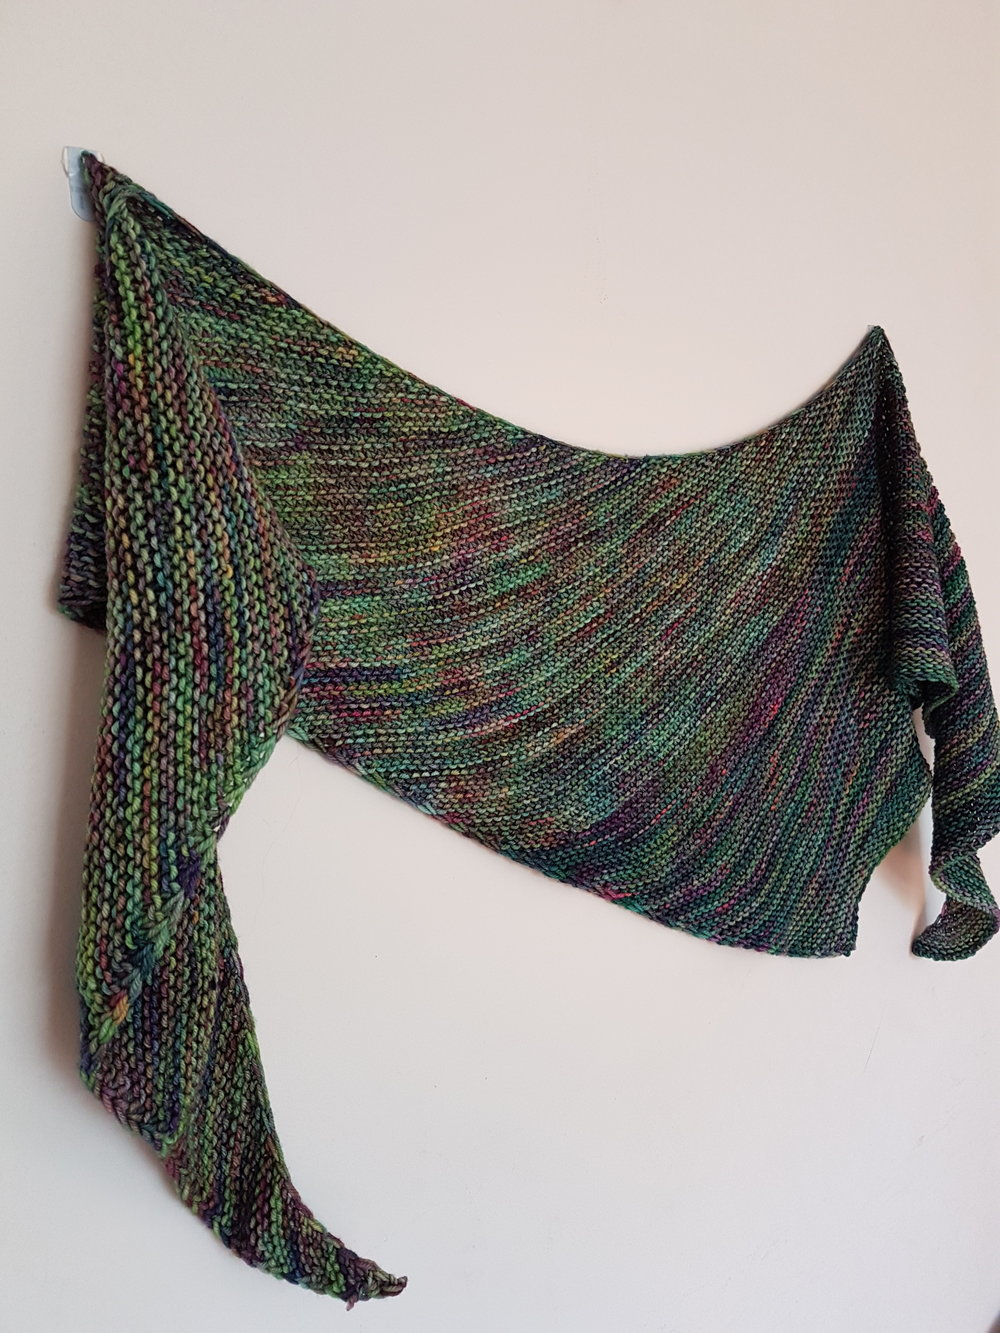 How To Create A Slipped Stitch Shawl Edge Louise Tilbrook Designs